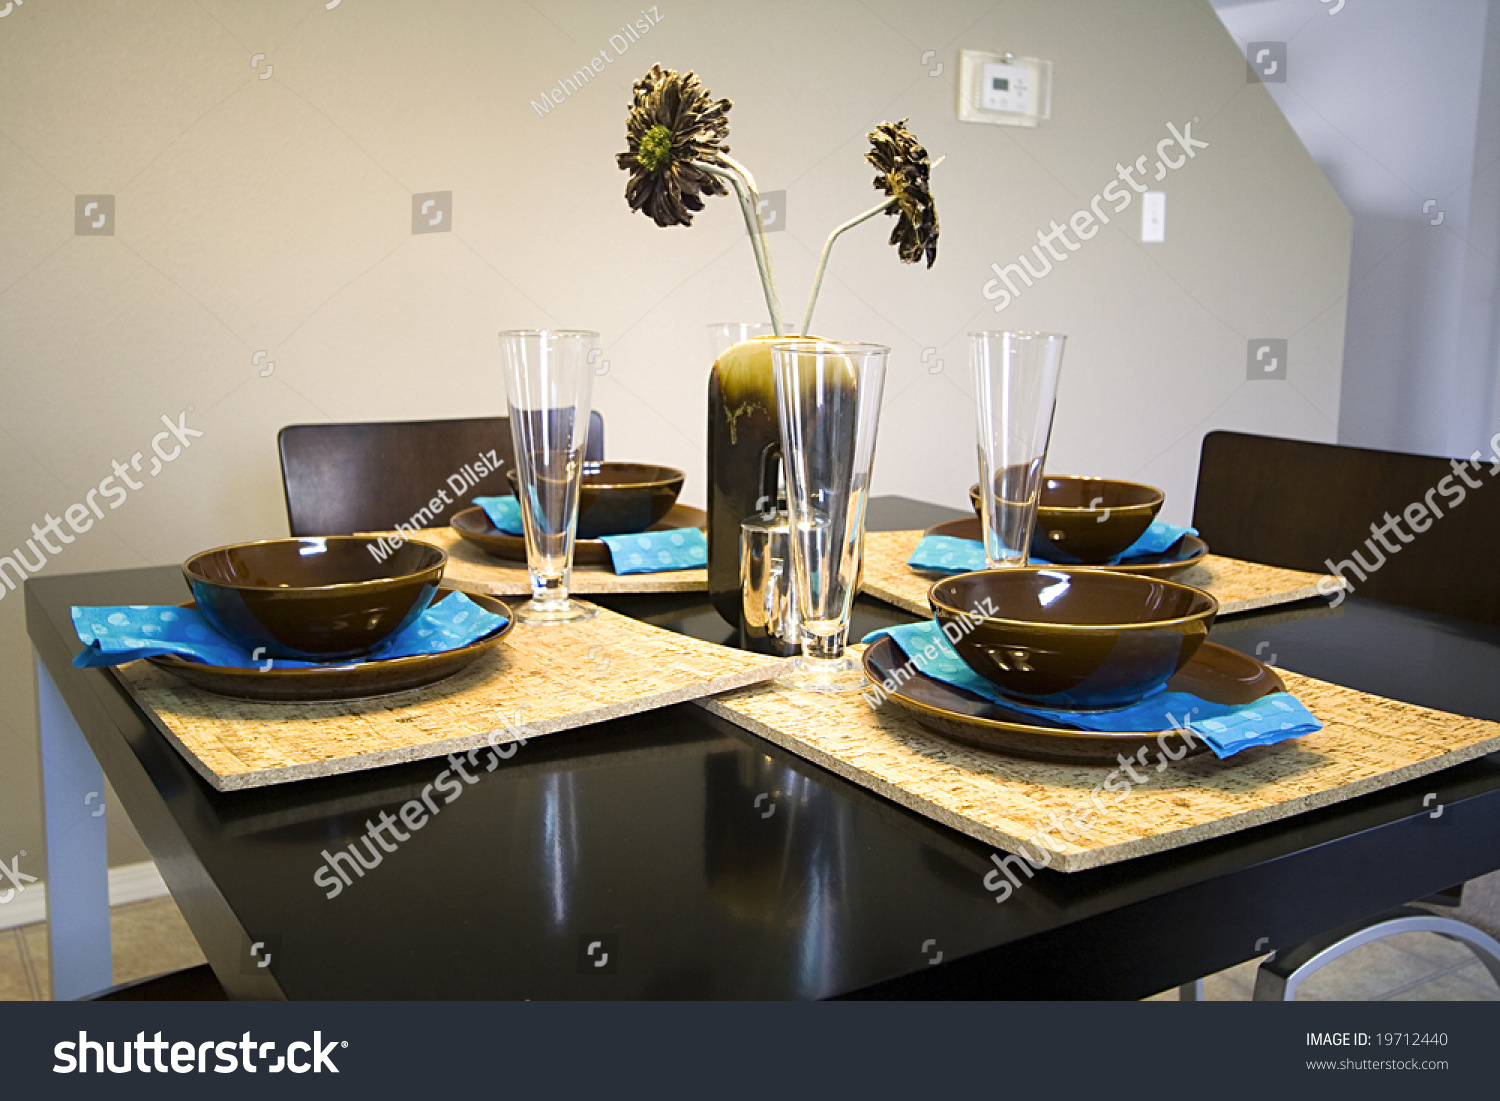 Kitchen Setup Closeup On A Setup Dinner Table In A Kitchen Stock Photo 19712440